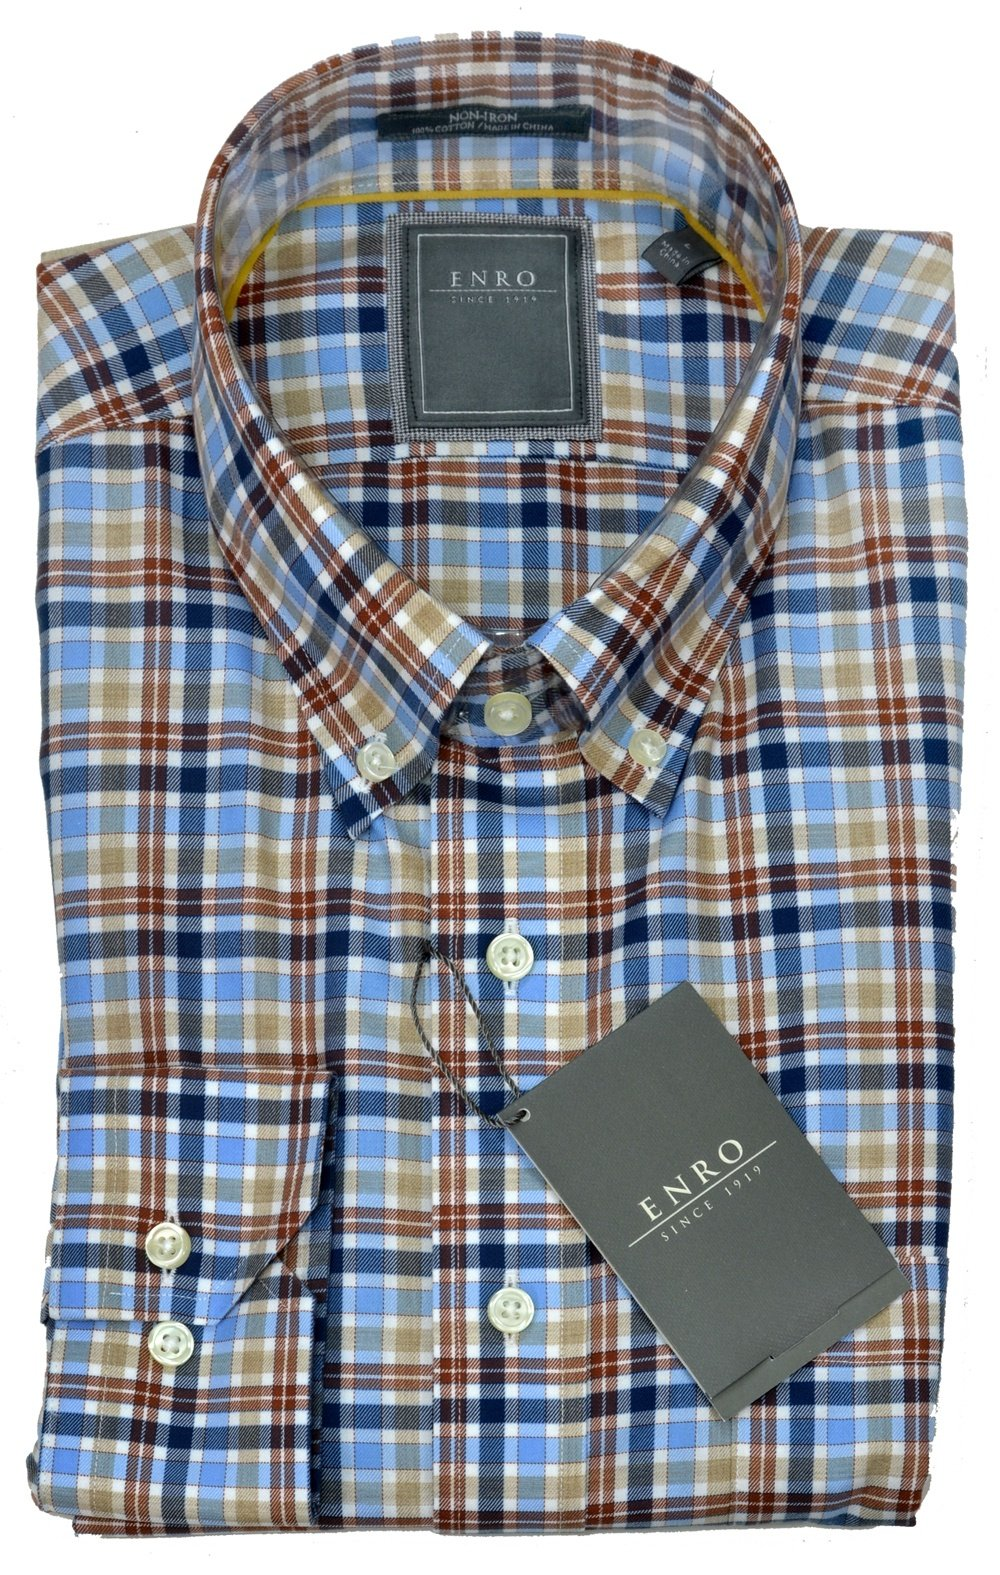 Enro Tan Multi Plaid Button Up - Rainwater's Men's Clothing and Tuxedo Rental